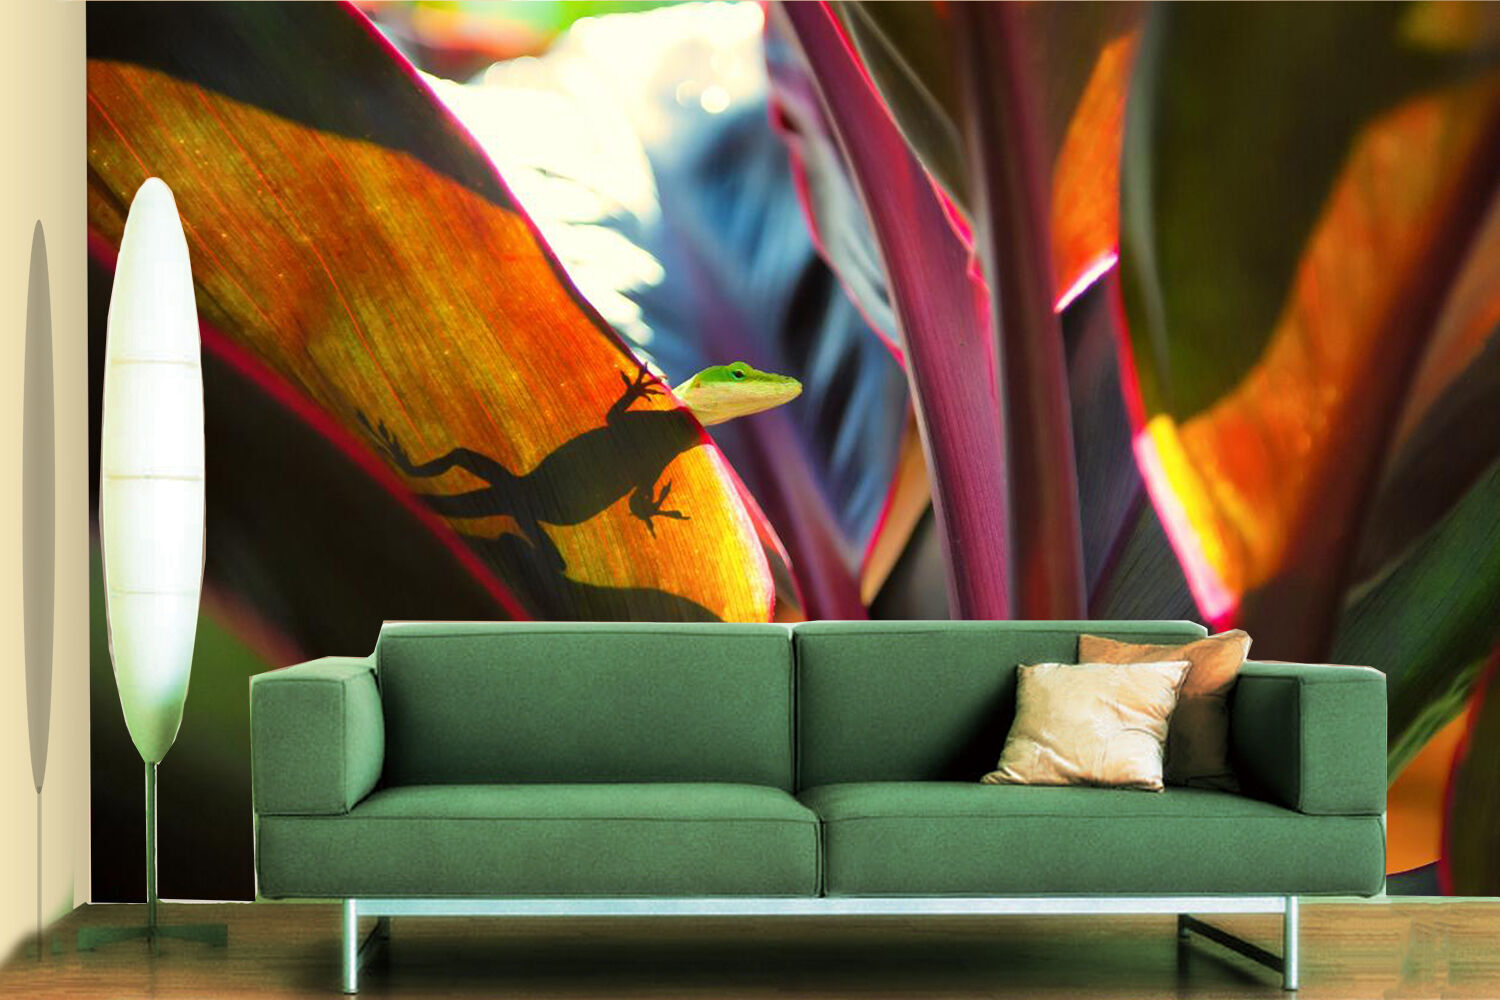 3D Lizard On Leaves 727 Wall Paper Wall Print Decal Wall Deco Indoor Wall